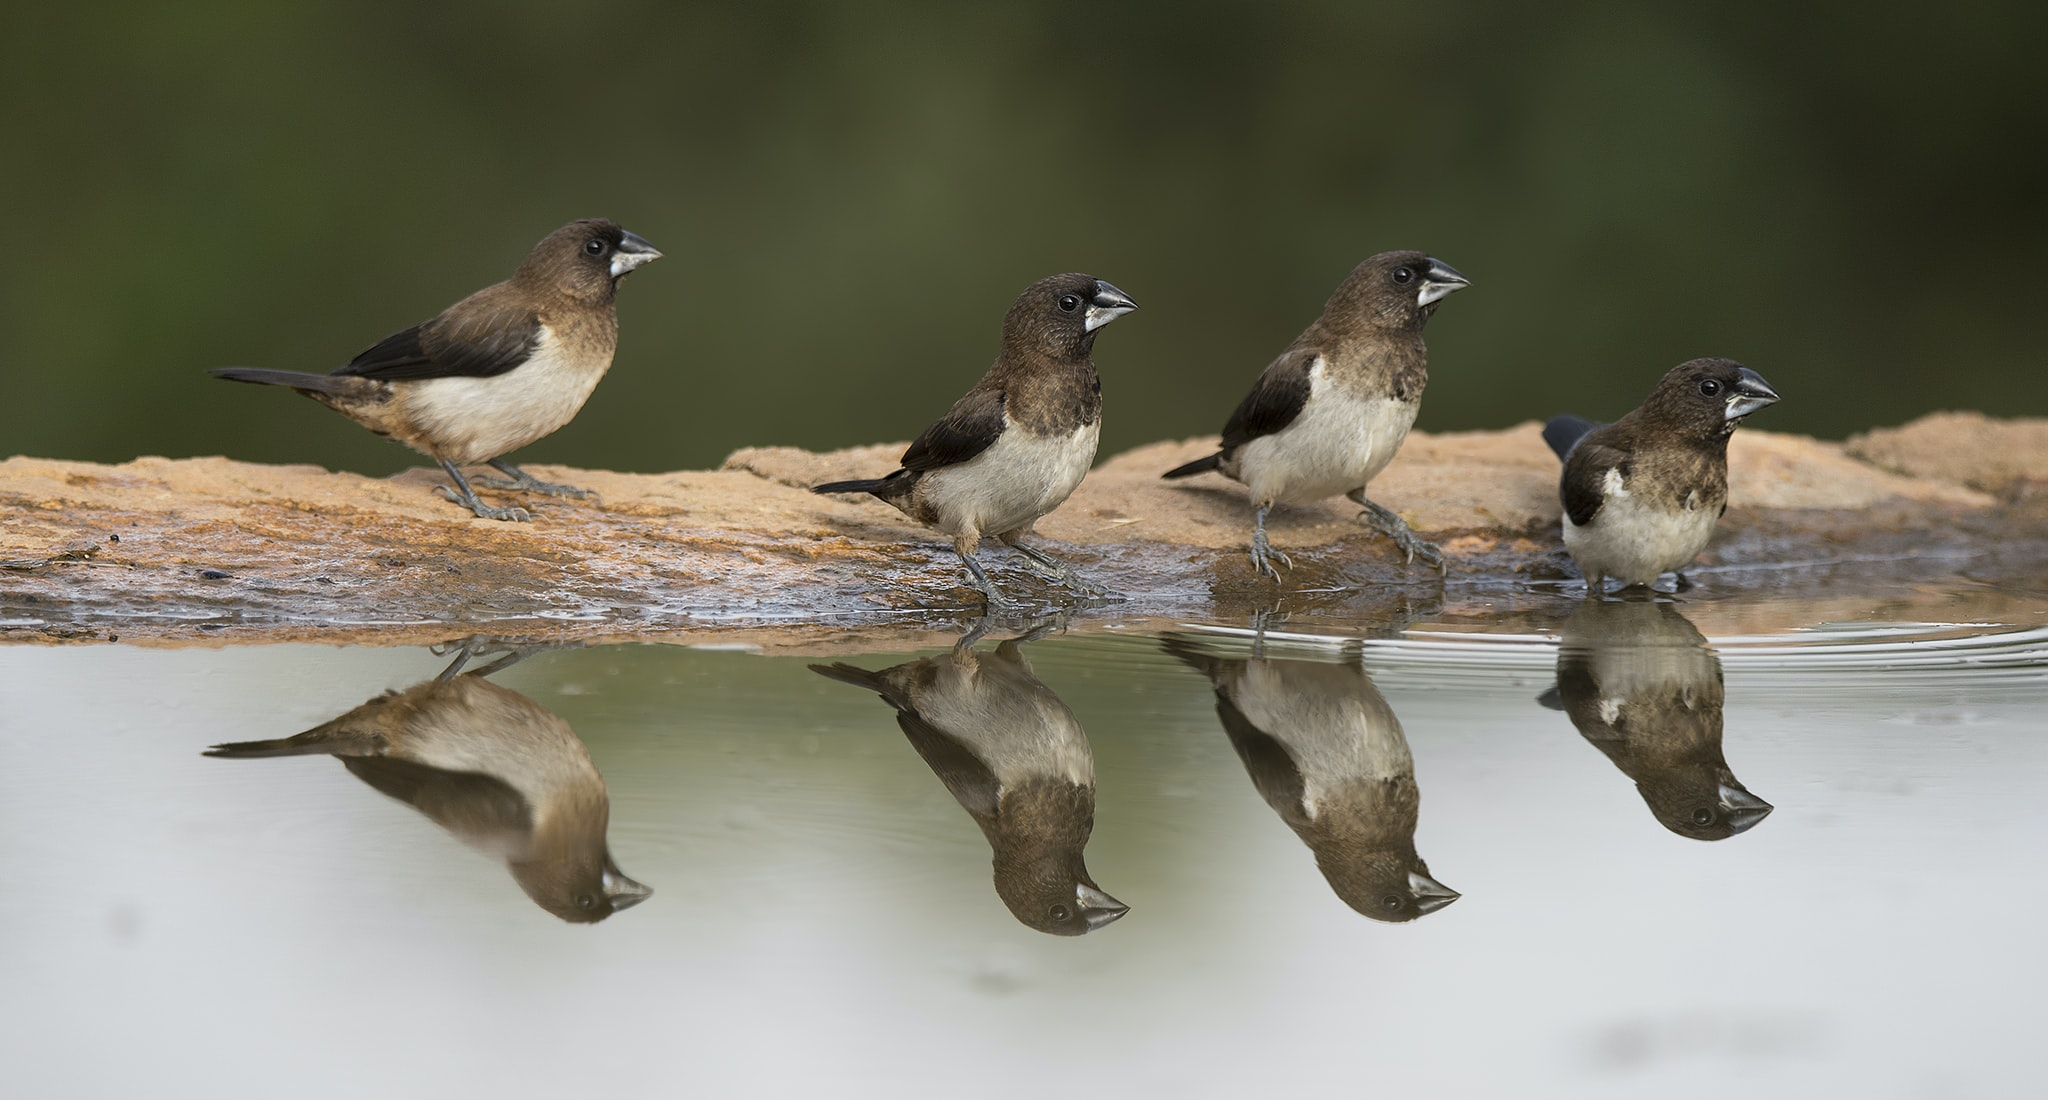 four birds near body of water